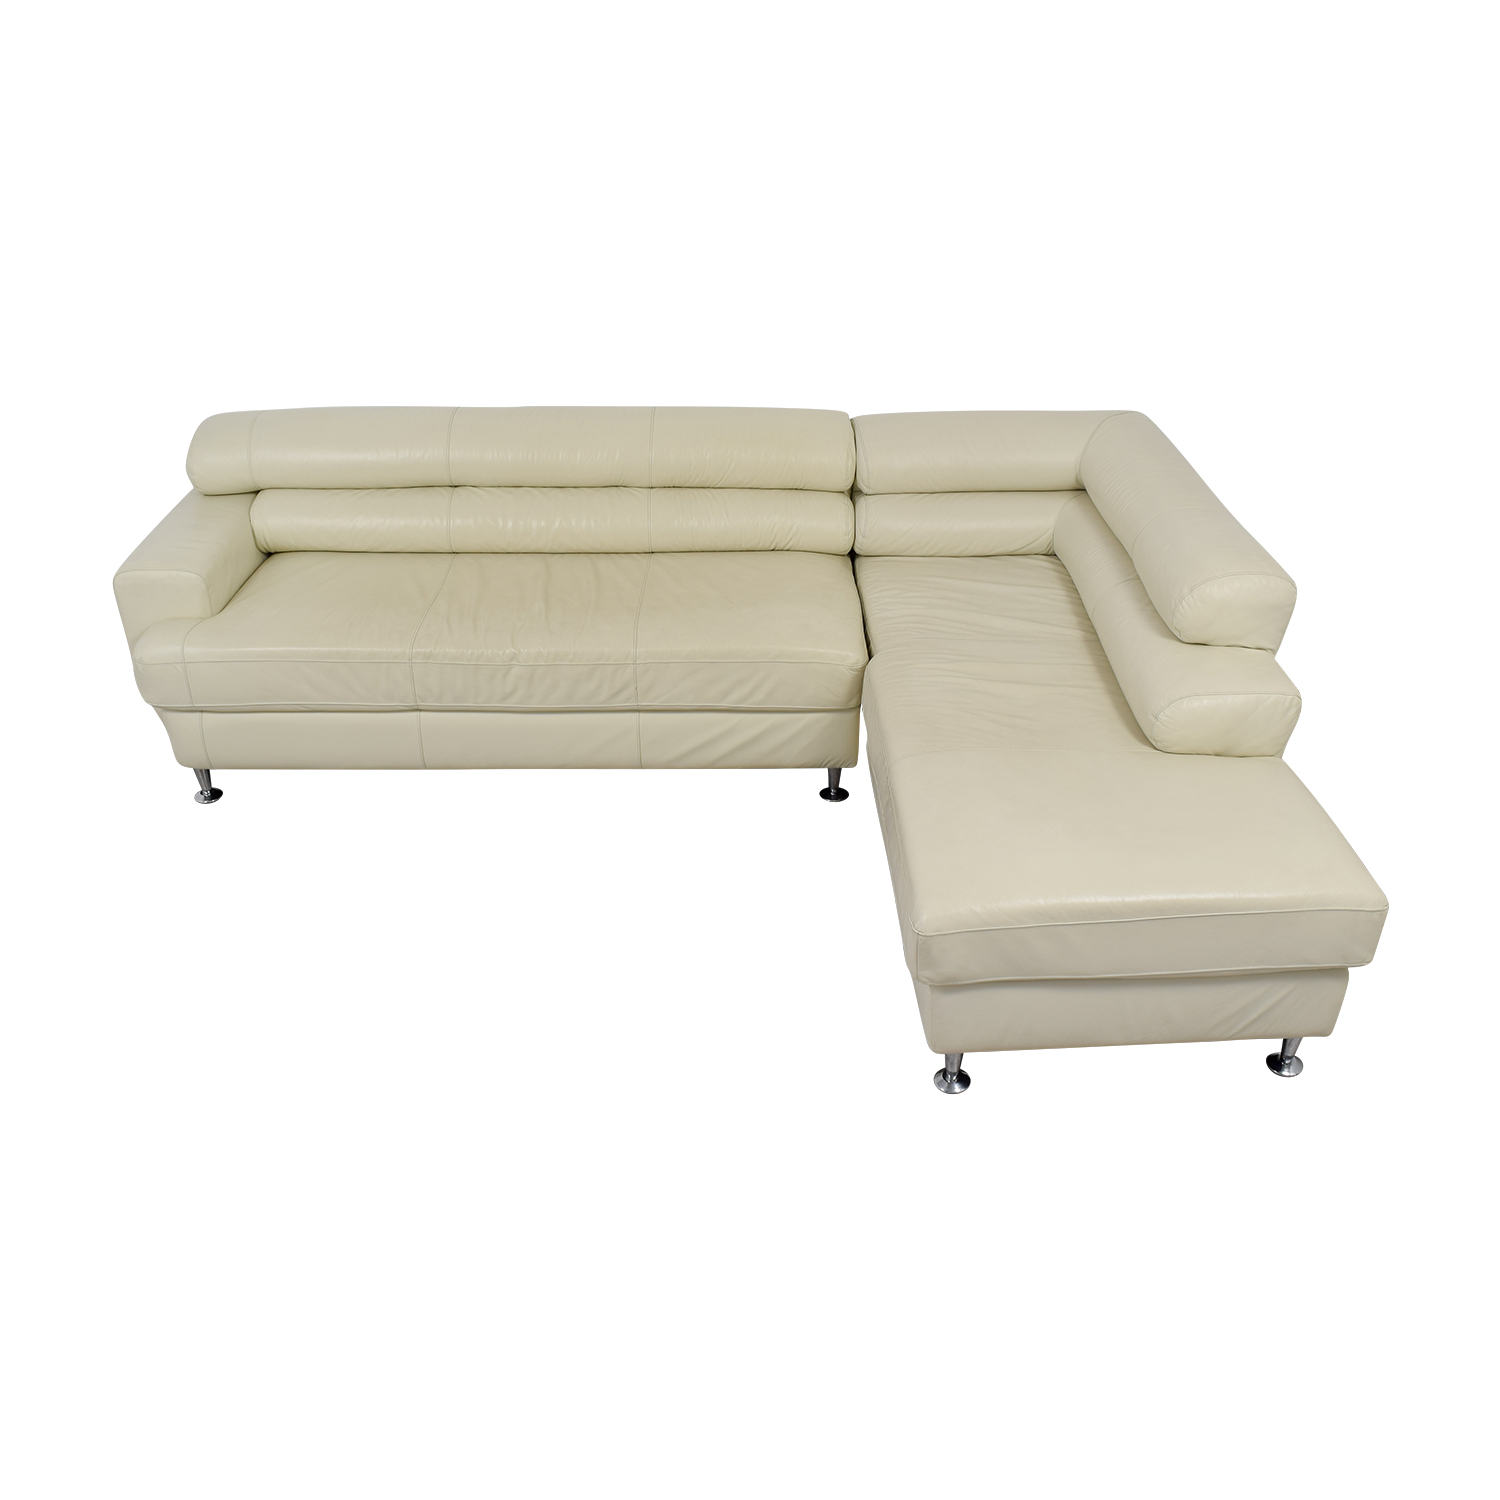 White Italian Leather Chaise  Sectional used